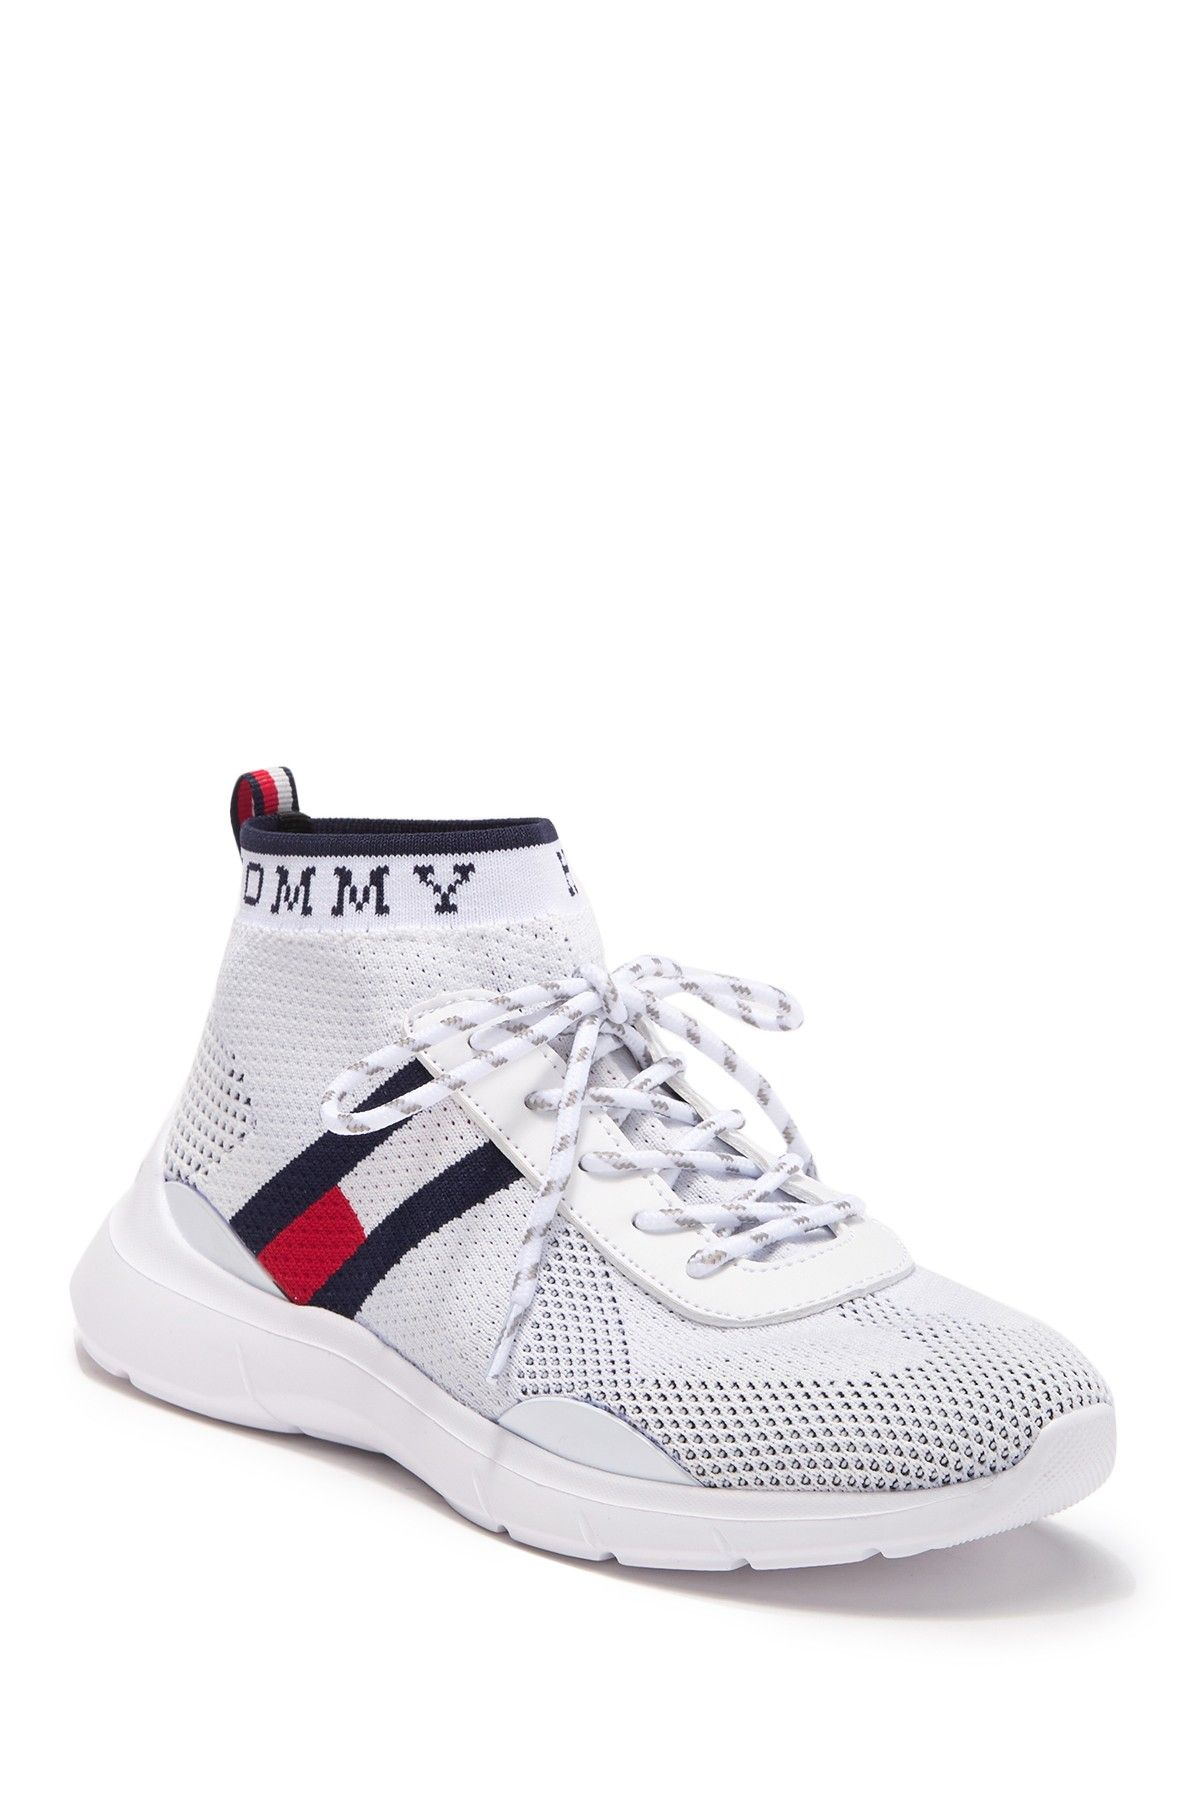 Tommy hilfiger shoes, Sneakers, Tommy